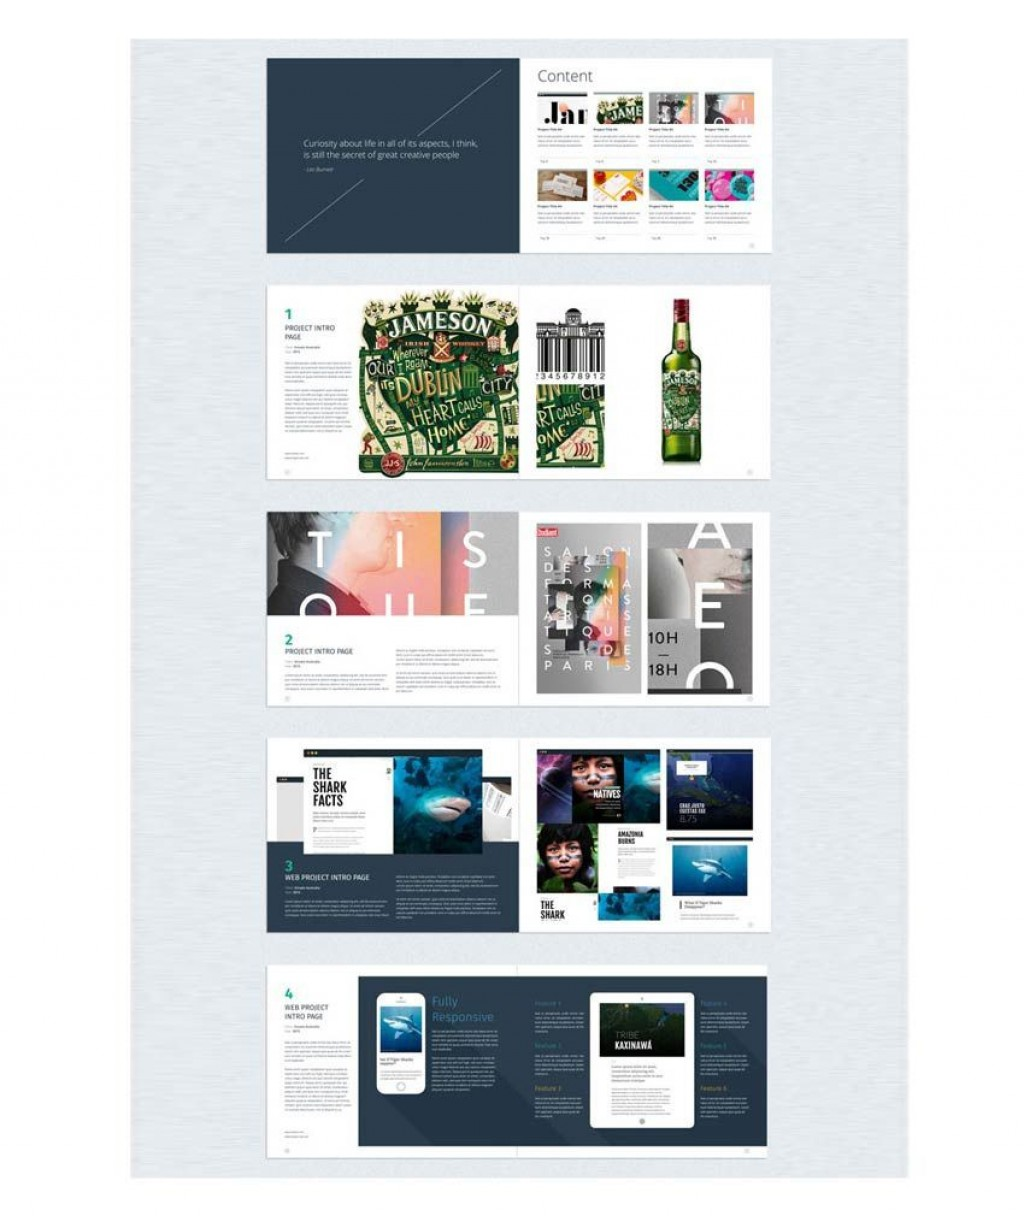 006 Fascinating In Design Portfolio Template Inspiration  Templates Interior Layout Indesign FreeLarge